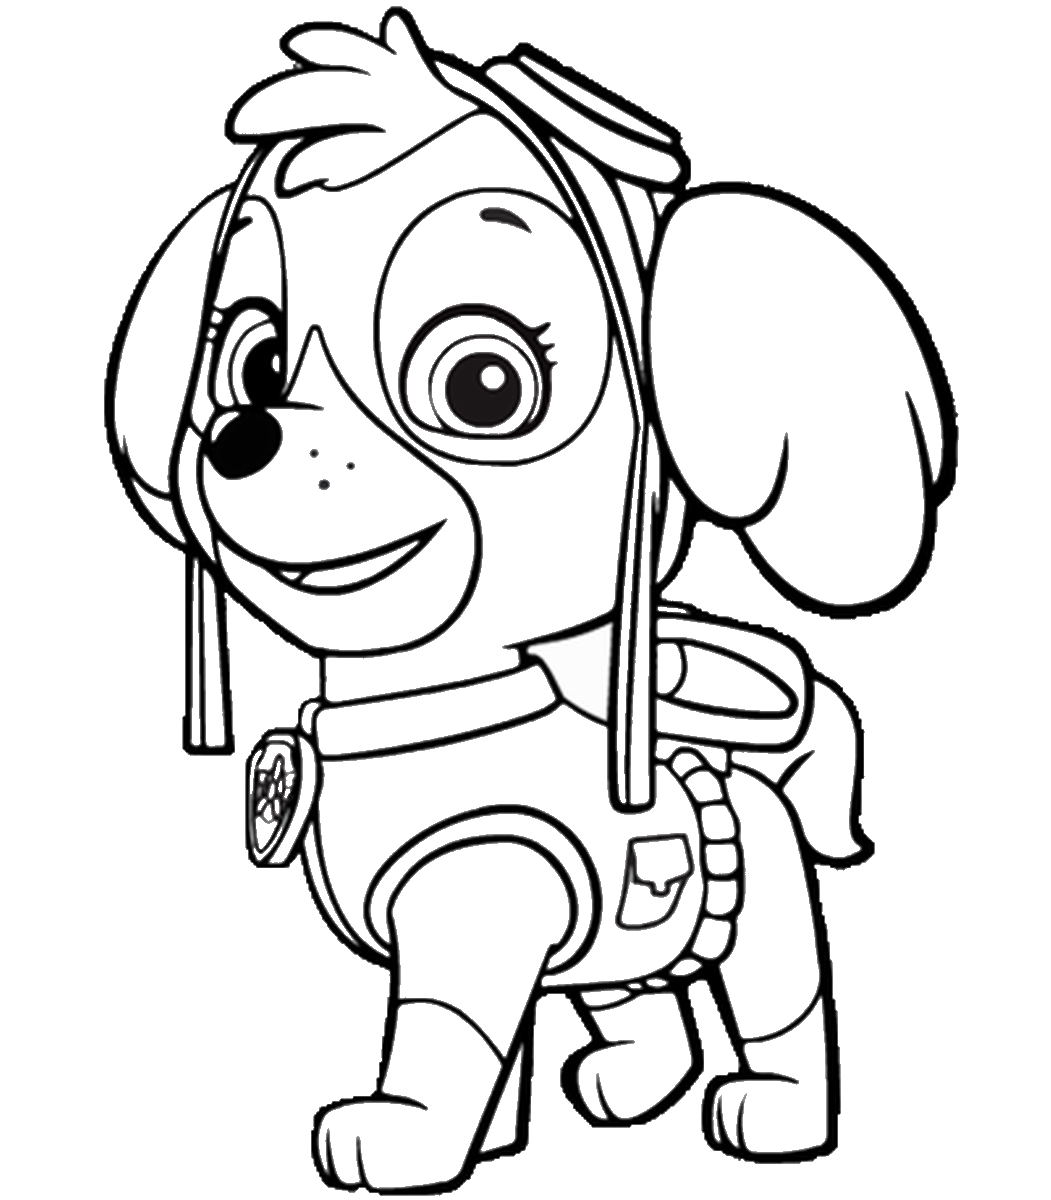 paw patrol printable pictures free printable paw patrol coloring pages free printable patrol paw pictures printable